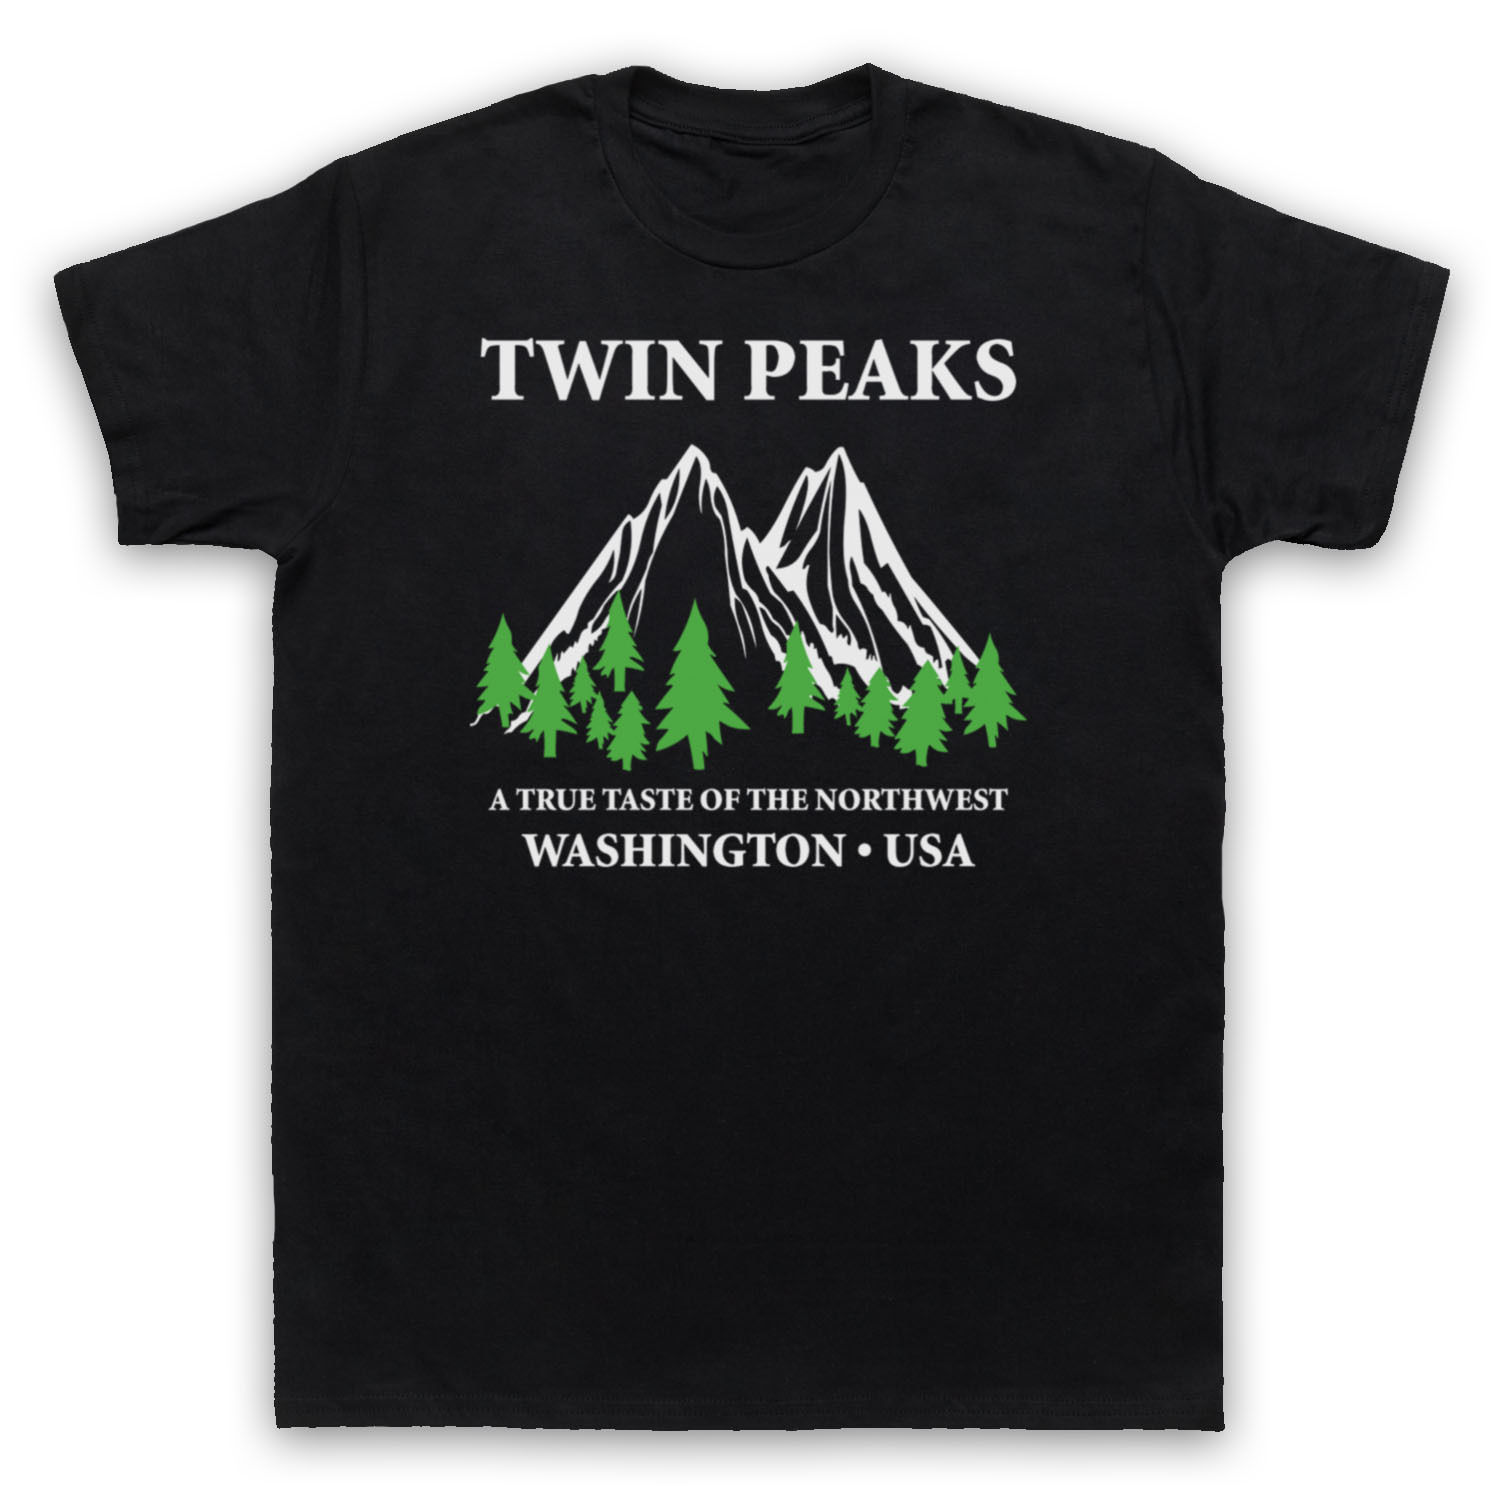 TWIN PEAKS A TRUE TASTE OF THE NORTHWEST UNOFFICIAL T-SHIRT ADULTS New 2018 Summer Style T Shirt Men Summer Style